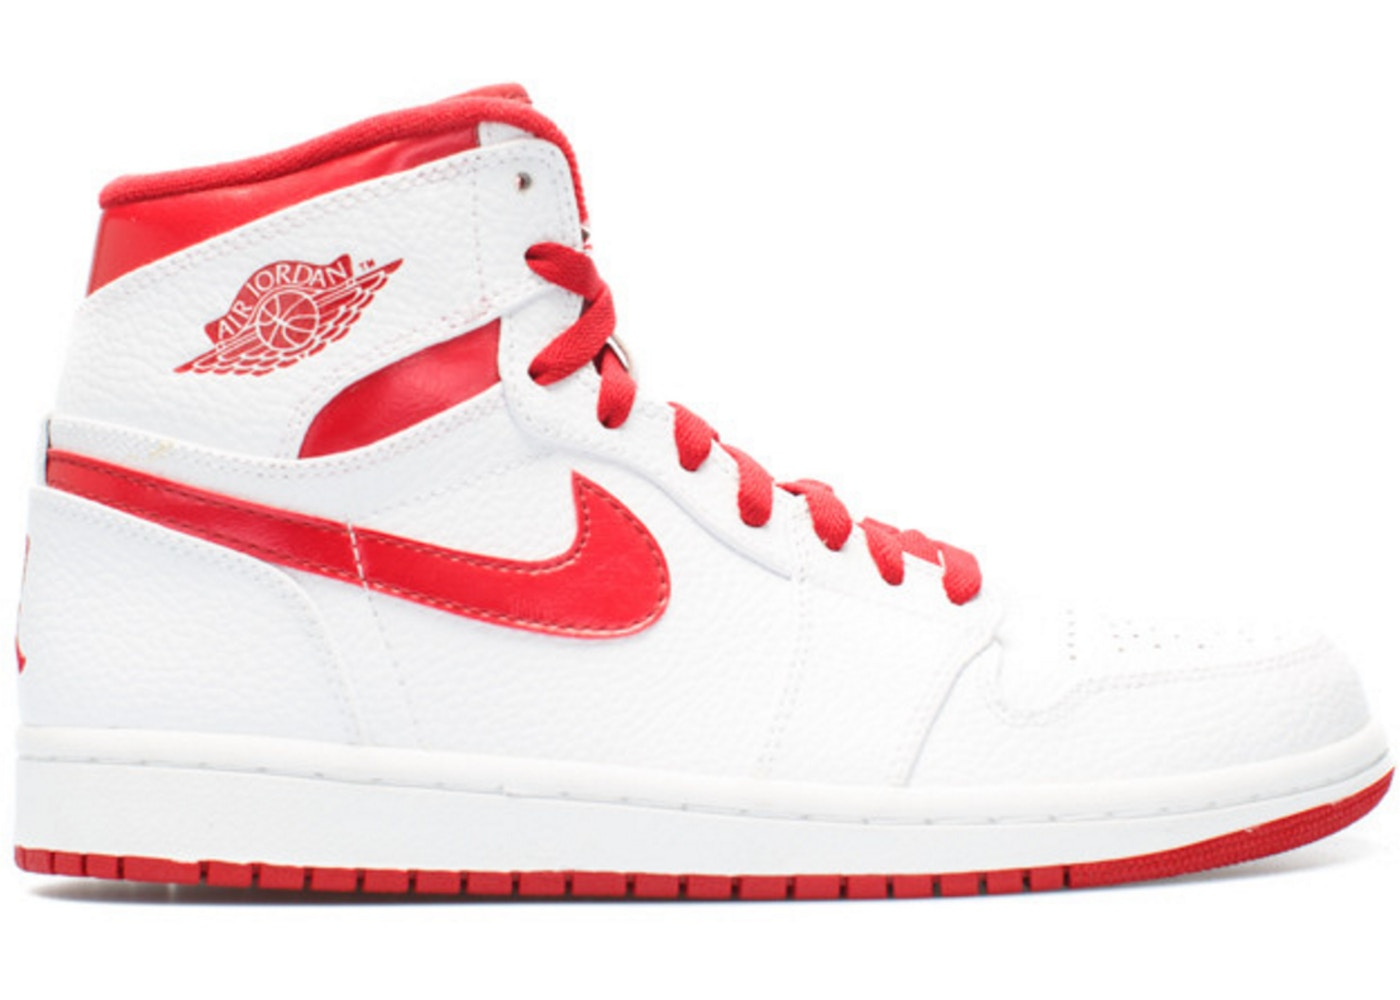 ナイキ ジョーダン JORDAN スニーカー 【 1 RETRO DO THE RIGHT THING RED WHITE VARSITY 】 メンズ